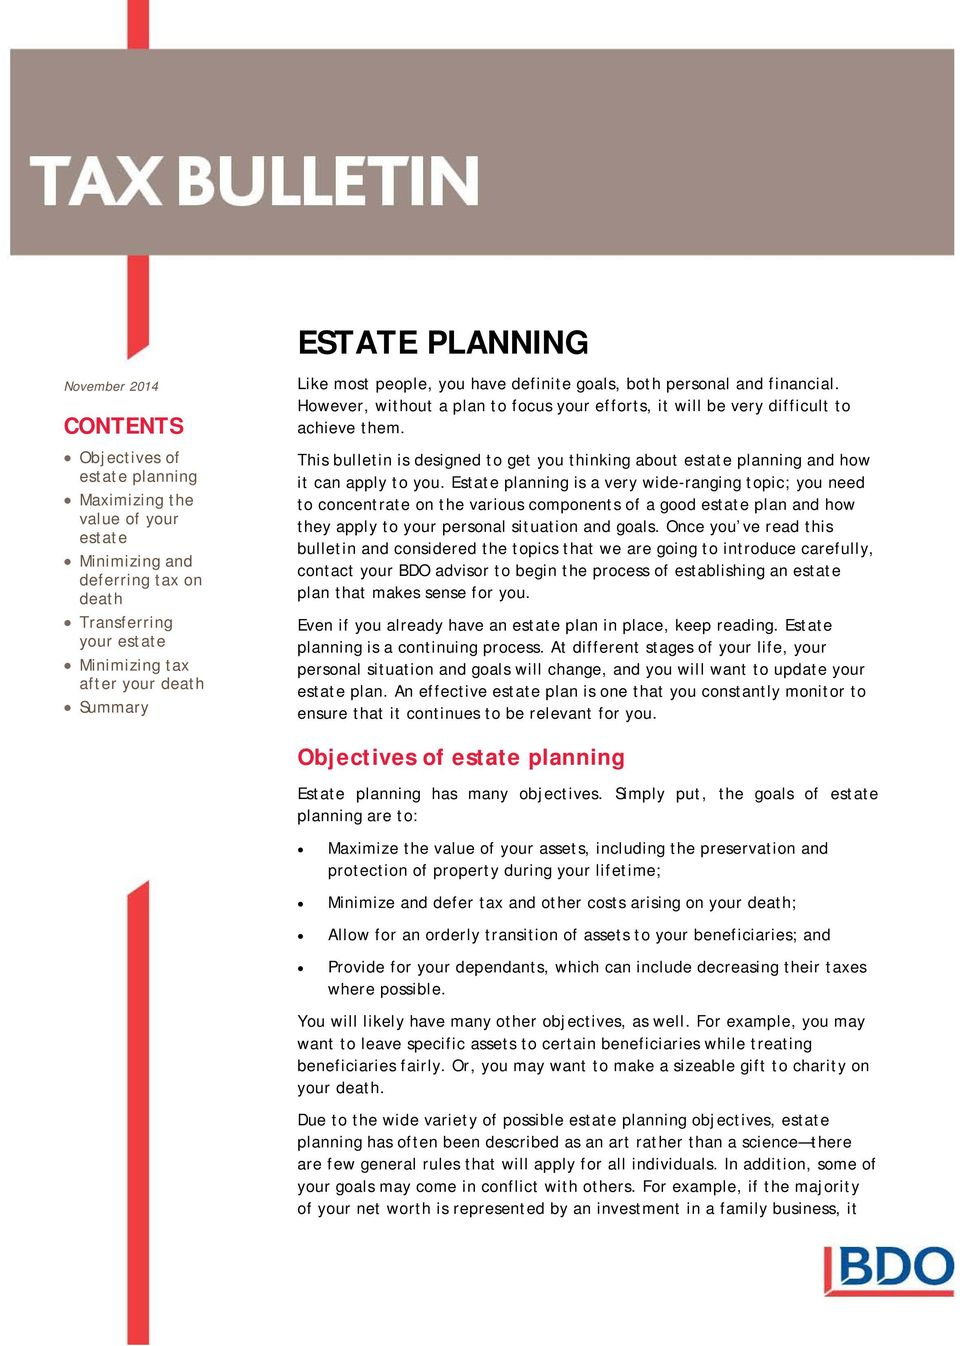 This bulletin is designed to get you thinking about estate planning and how it can apply to you.